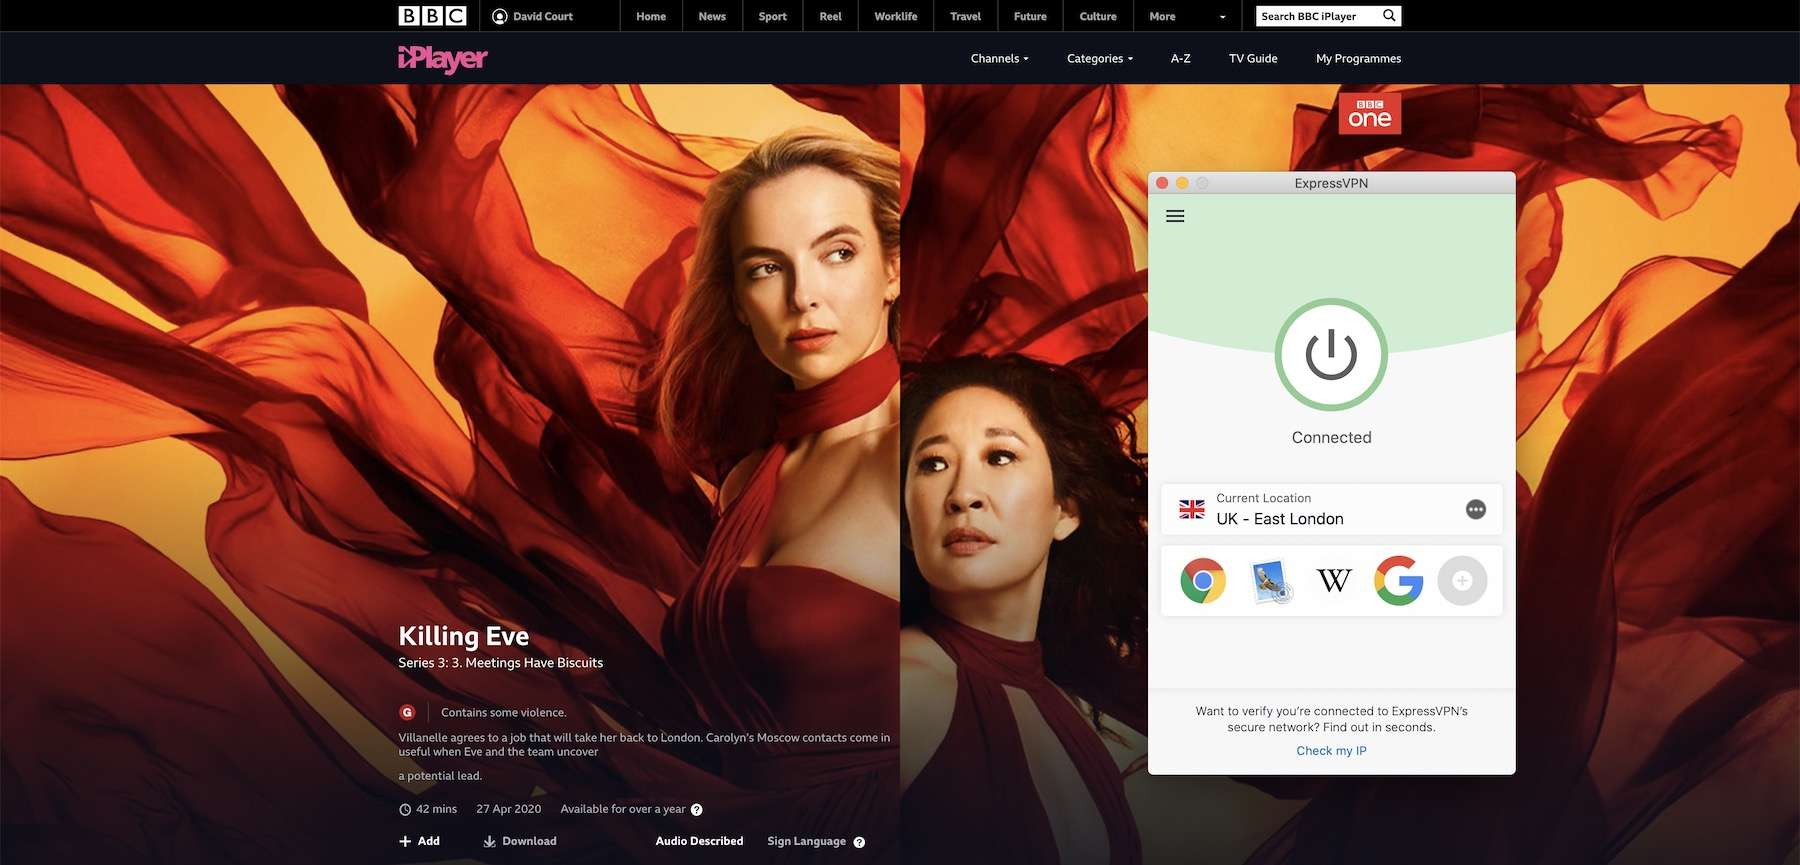 How to watch BBC iPlayer in New Zealand (May 2020)